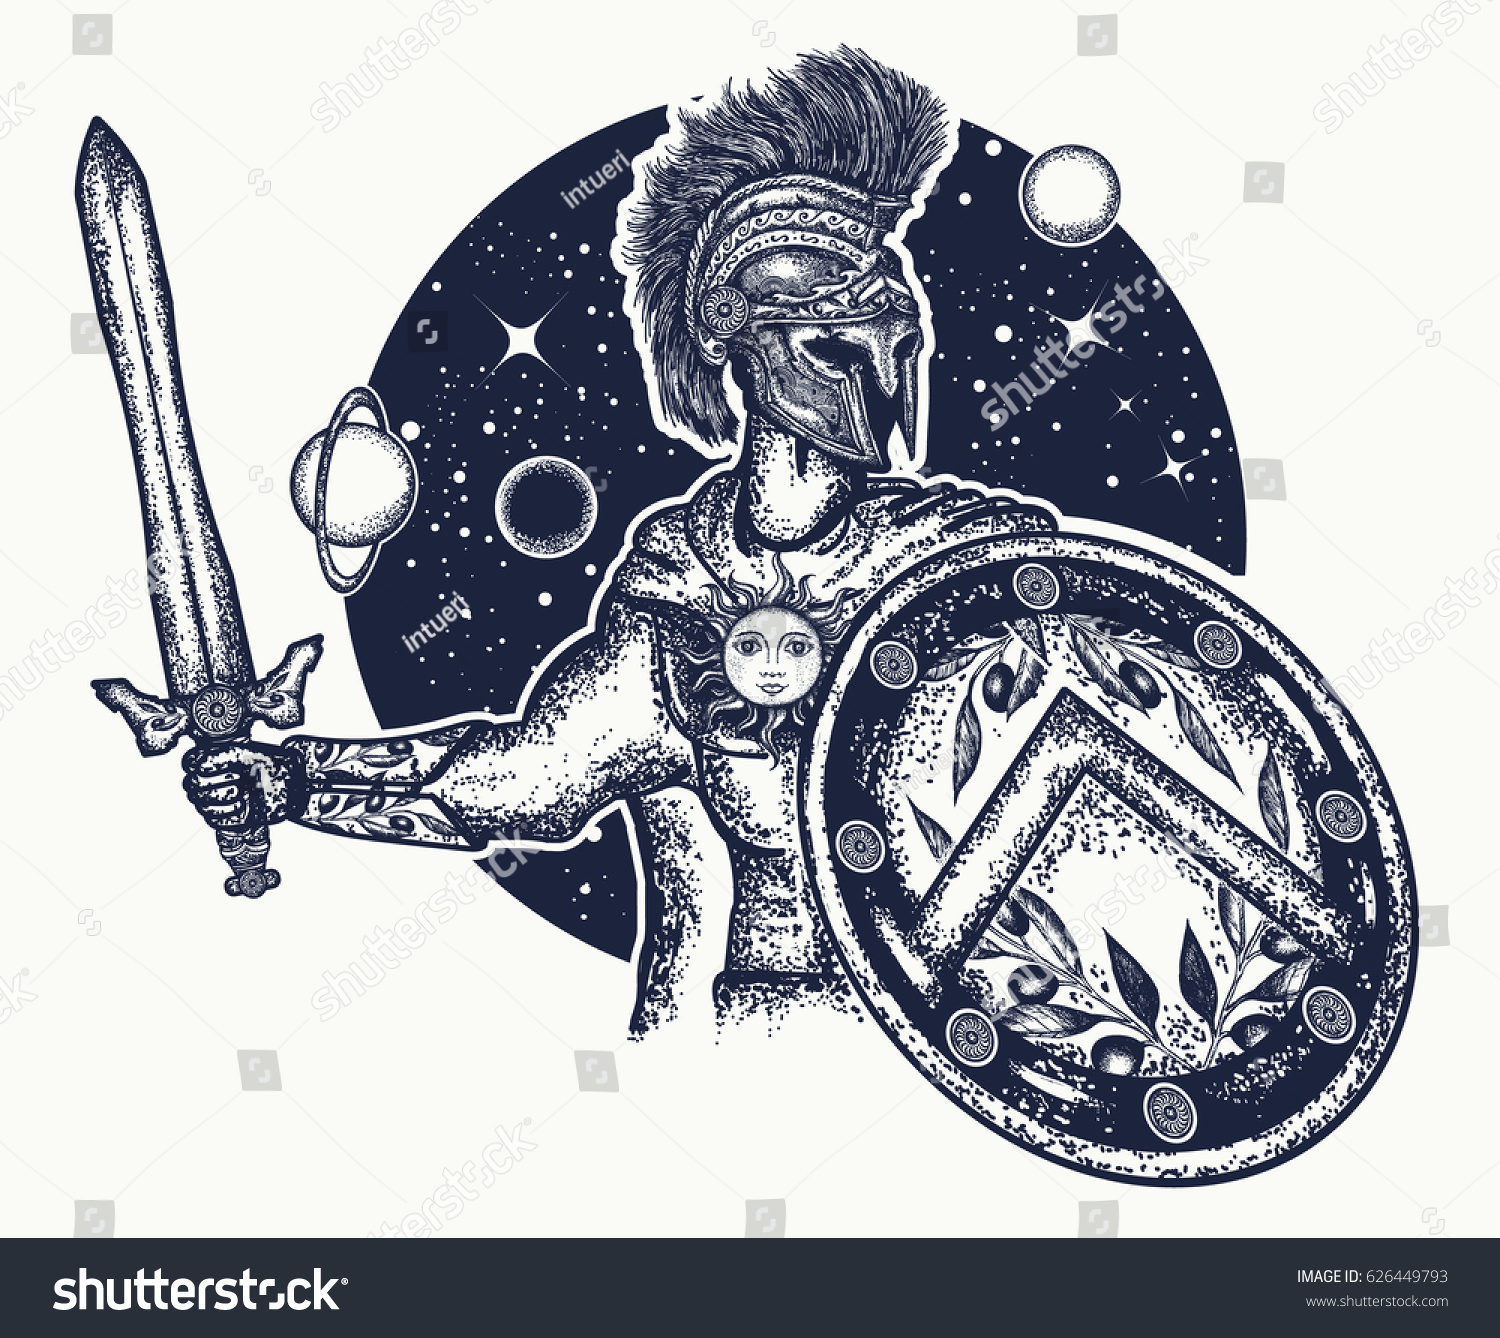 spartan warrior holding sword and shield tattoo art legionary of ancient rome and ancient greece - Ancient Rome Designs